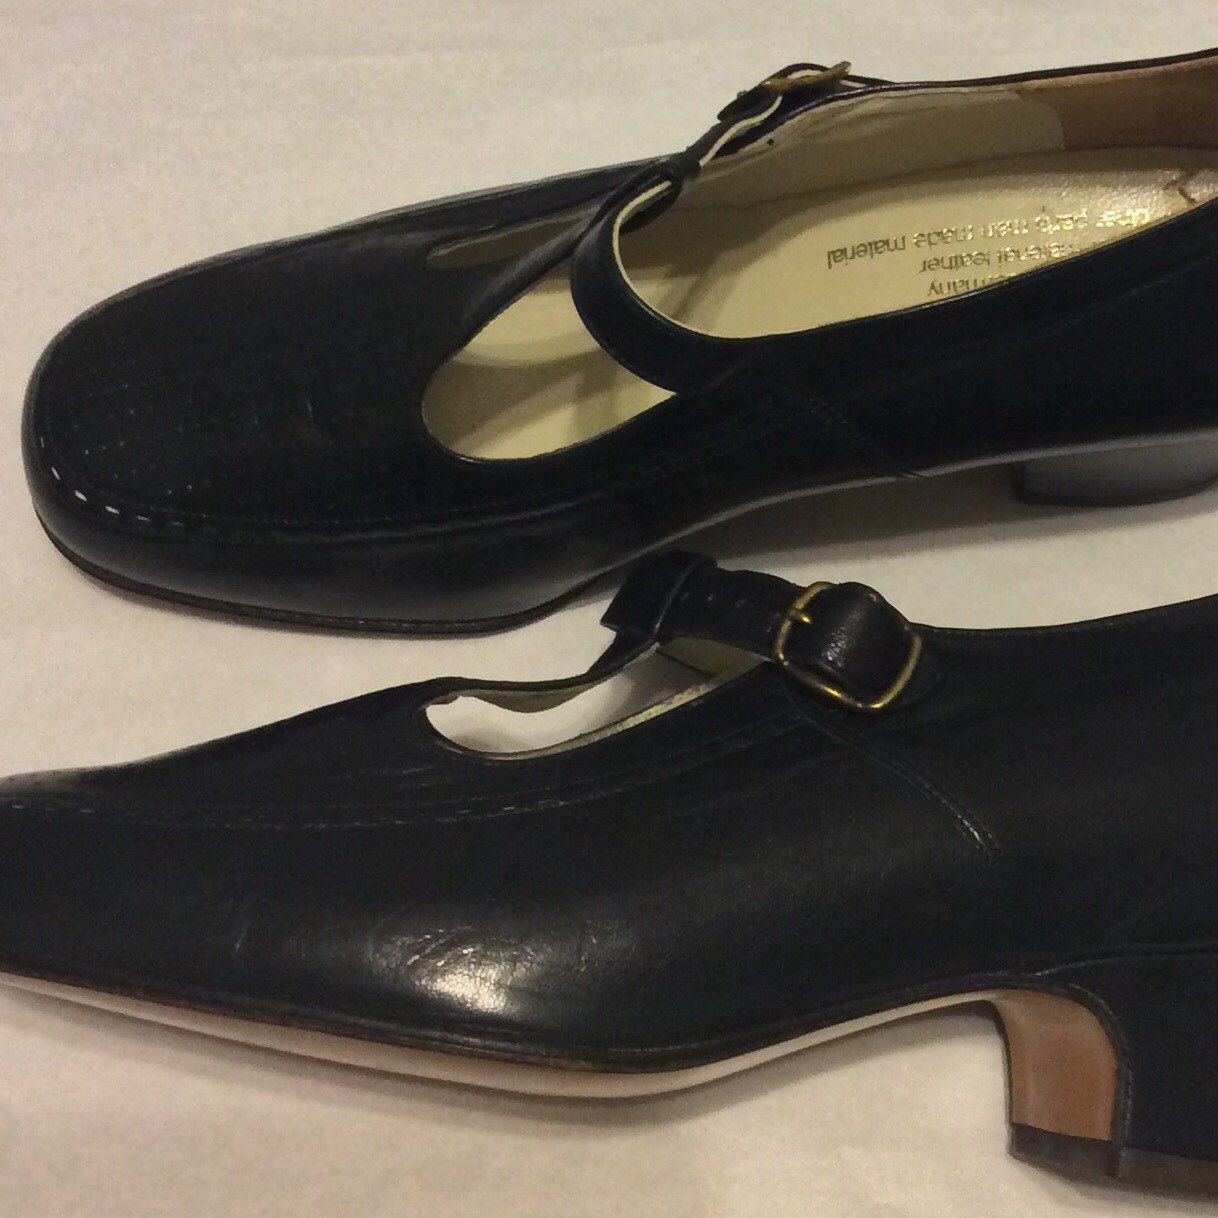 15cbb50c3446 Retro Designer Shoes. Ladies Leather Navy Blue Spiess Germany Mary Jane  Style Shoes. Check my shop out for many great vintage finds!